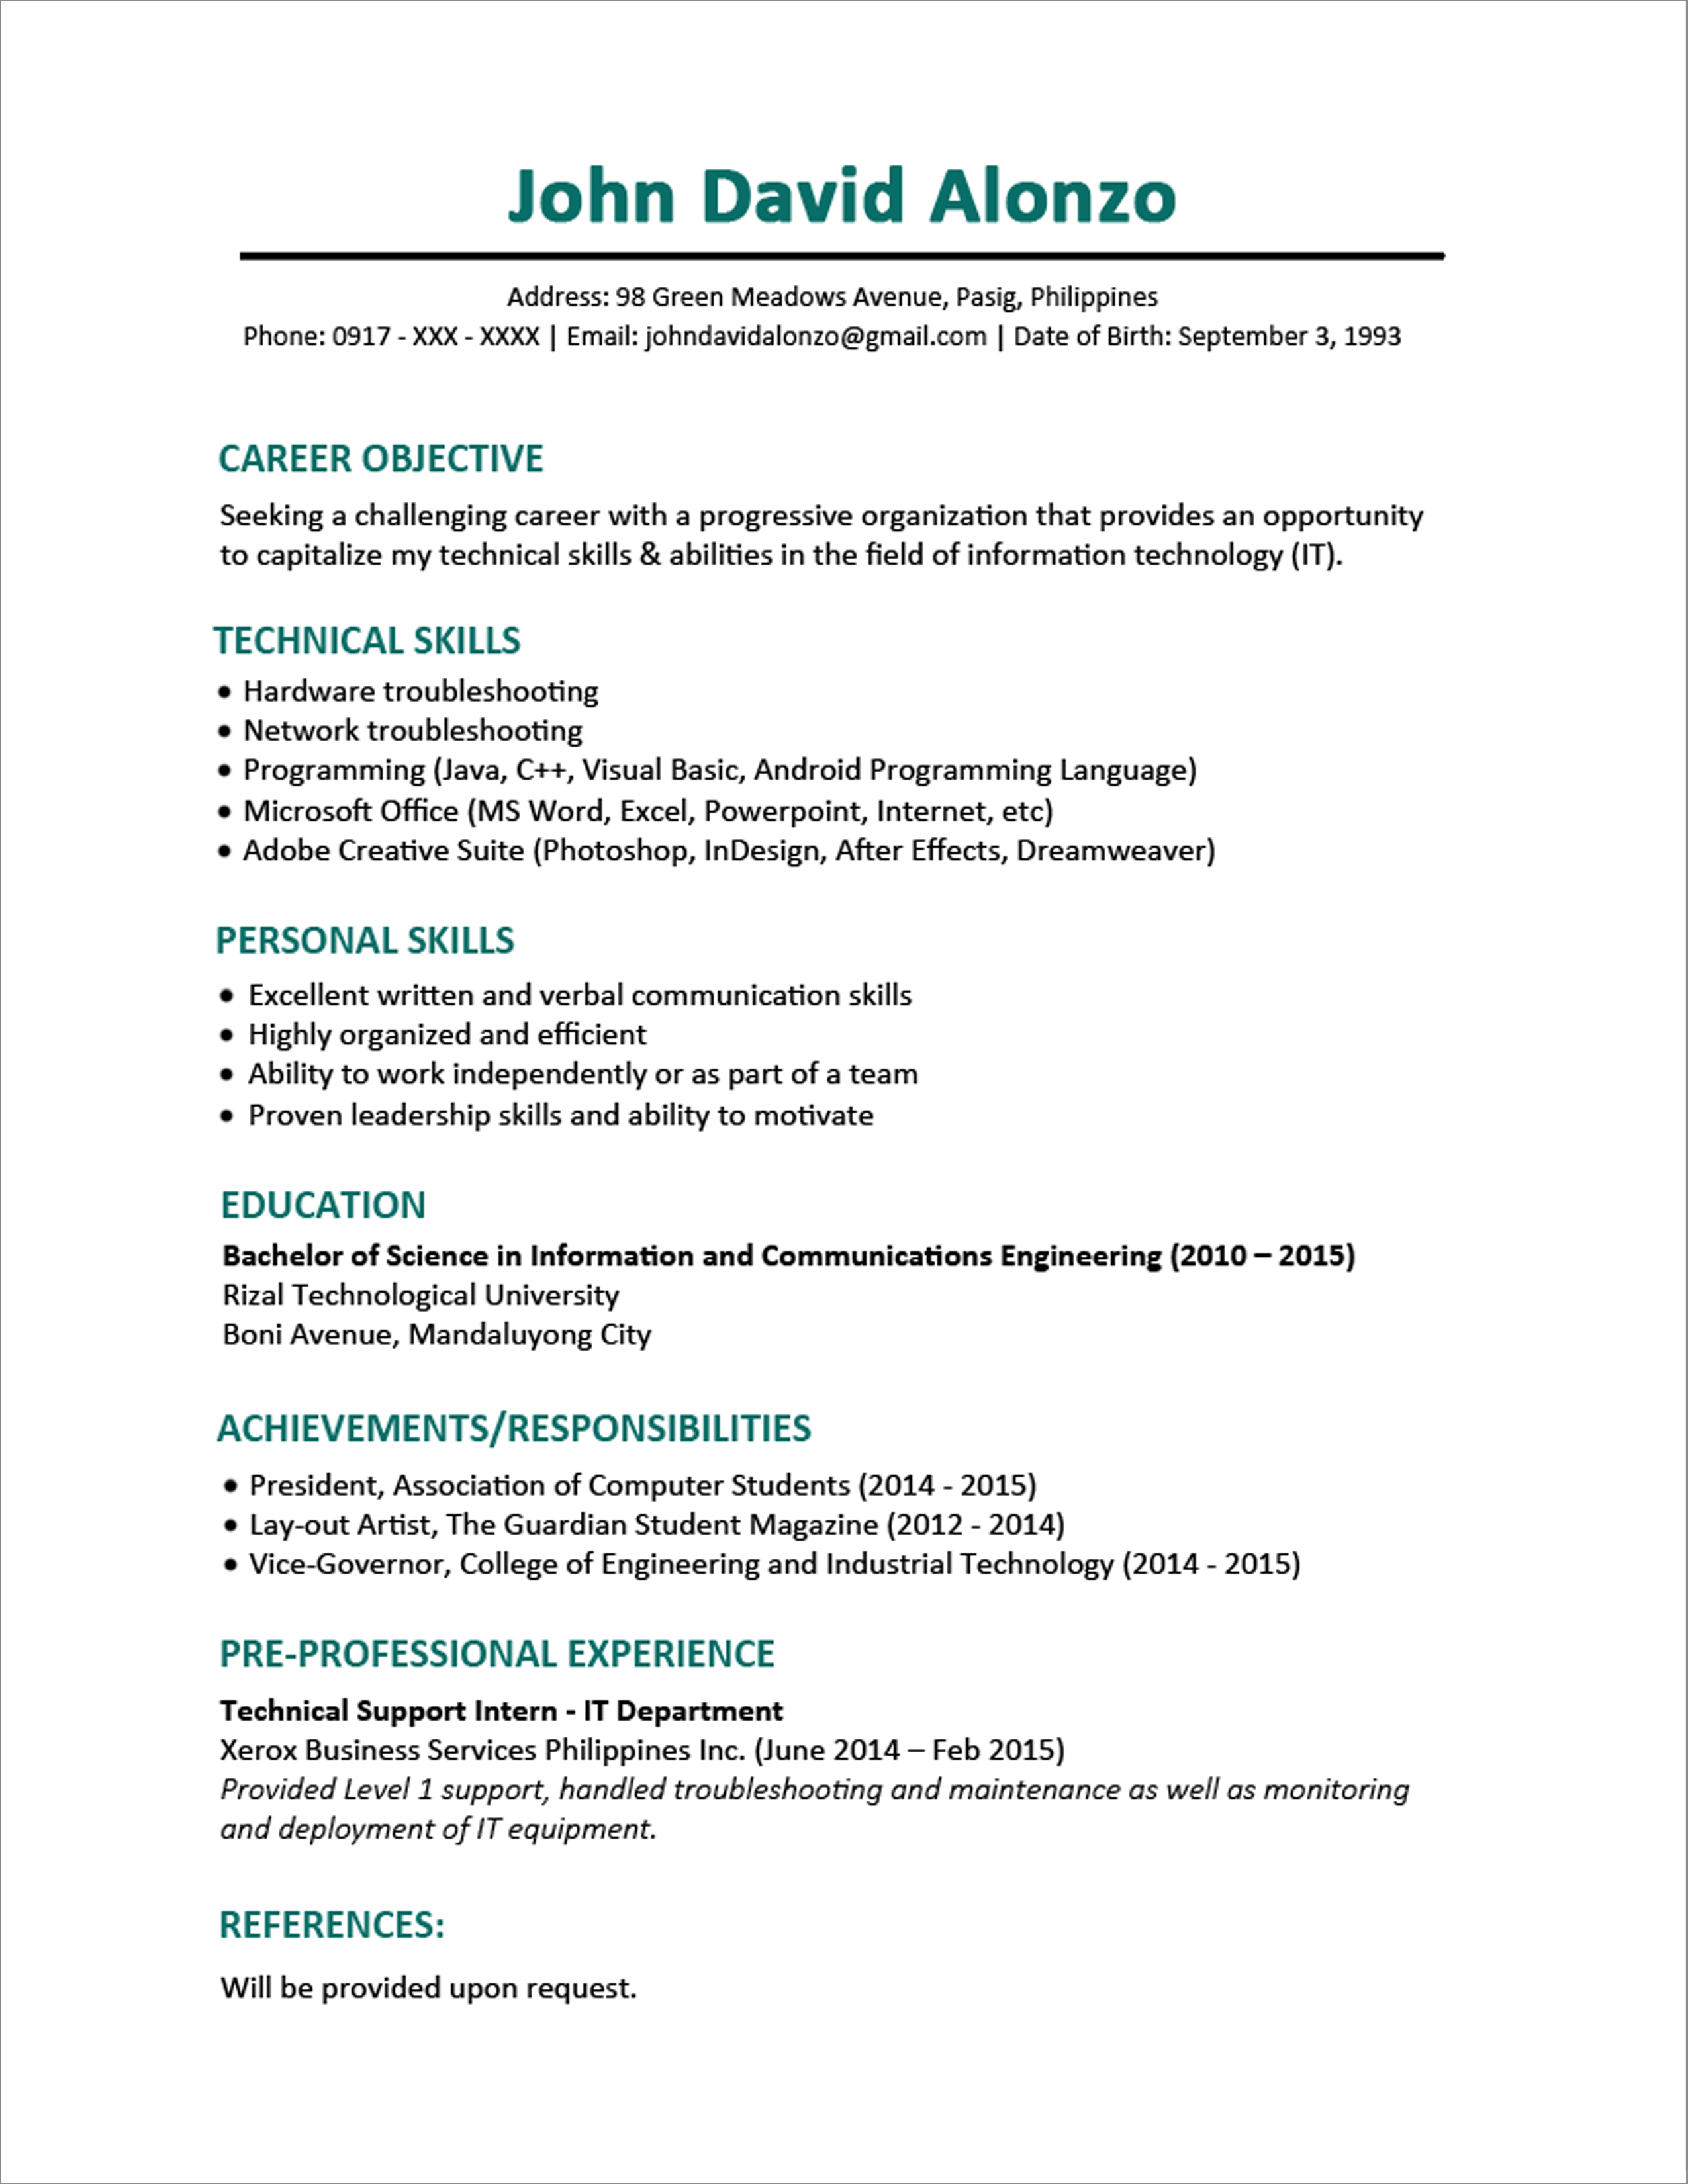 Leadership Resume Examples Unique Resume Templates You Can Download 3  Resume Examples  Pinterest